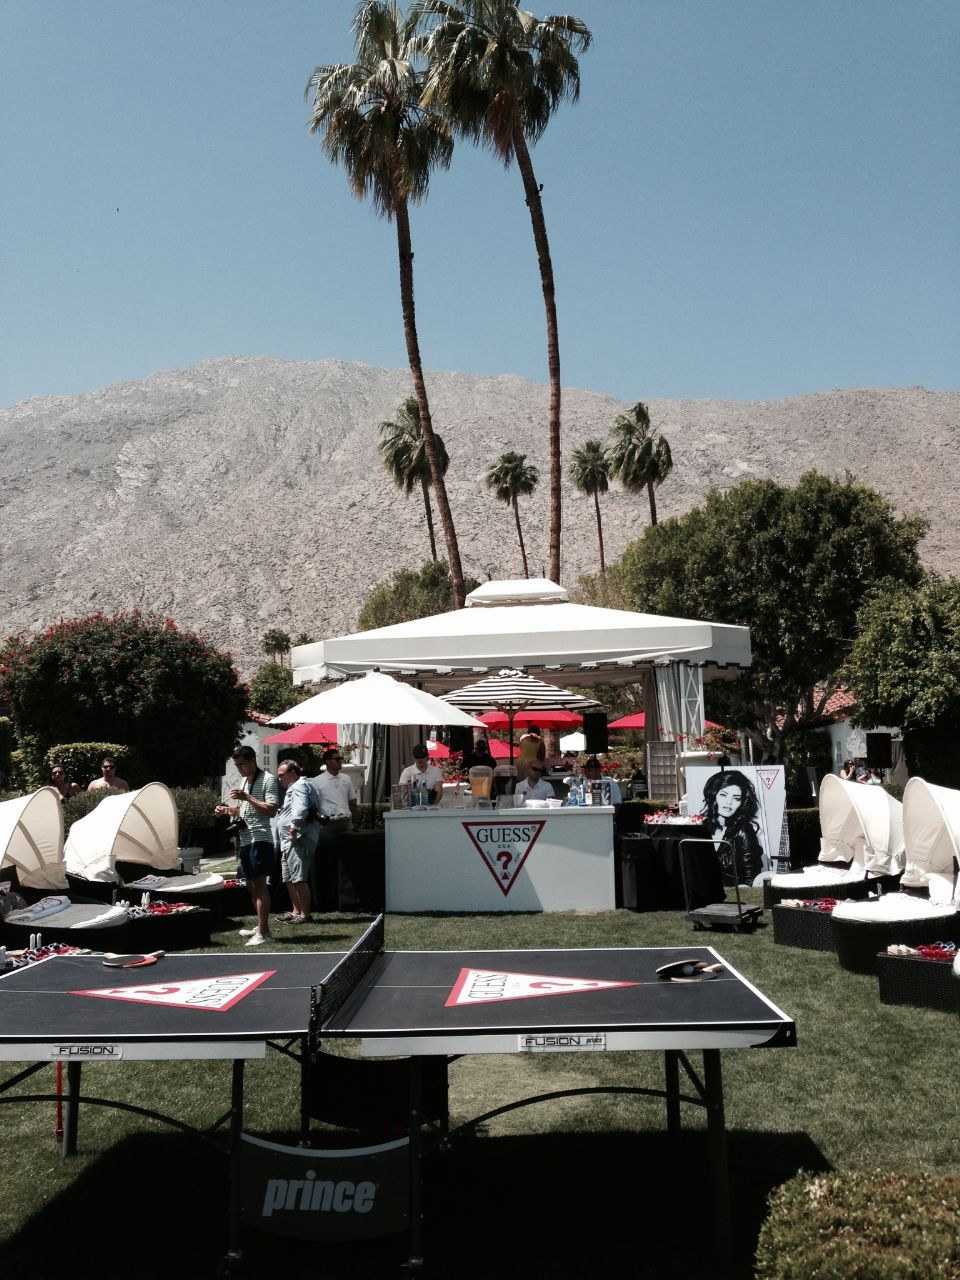 guess coachella party viceroy hotel, currently crushing